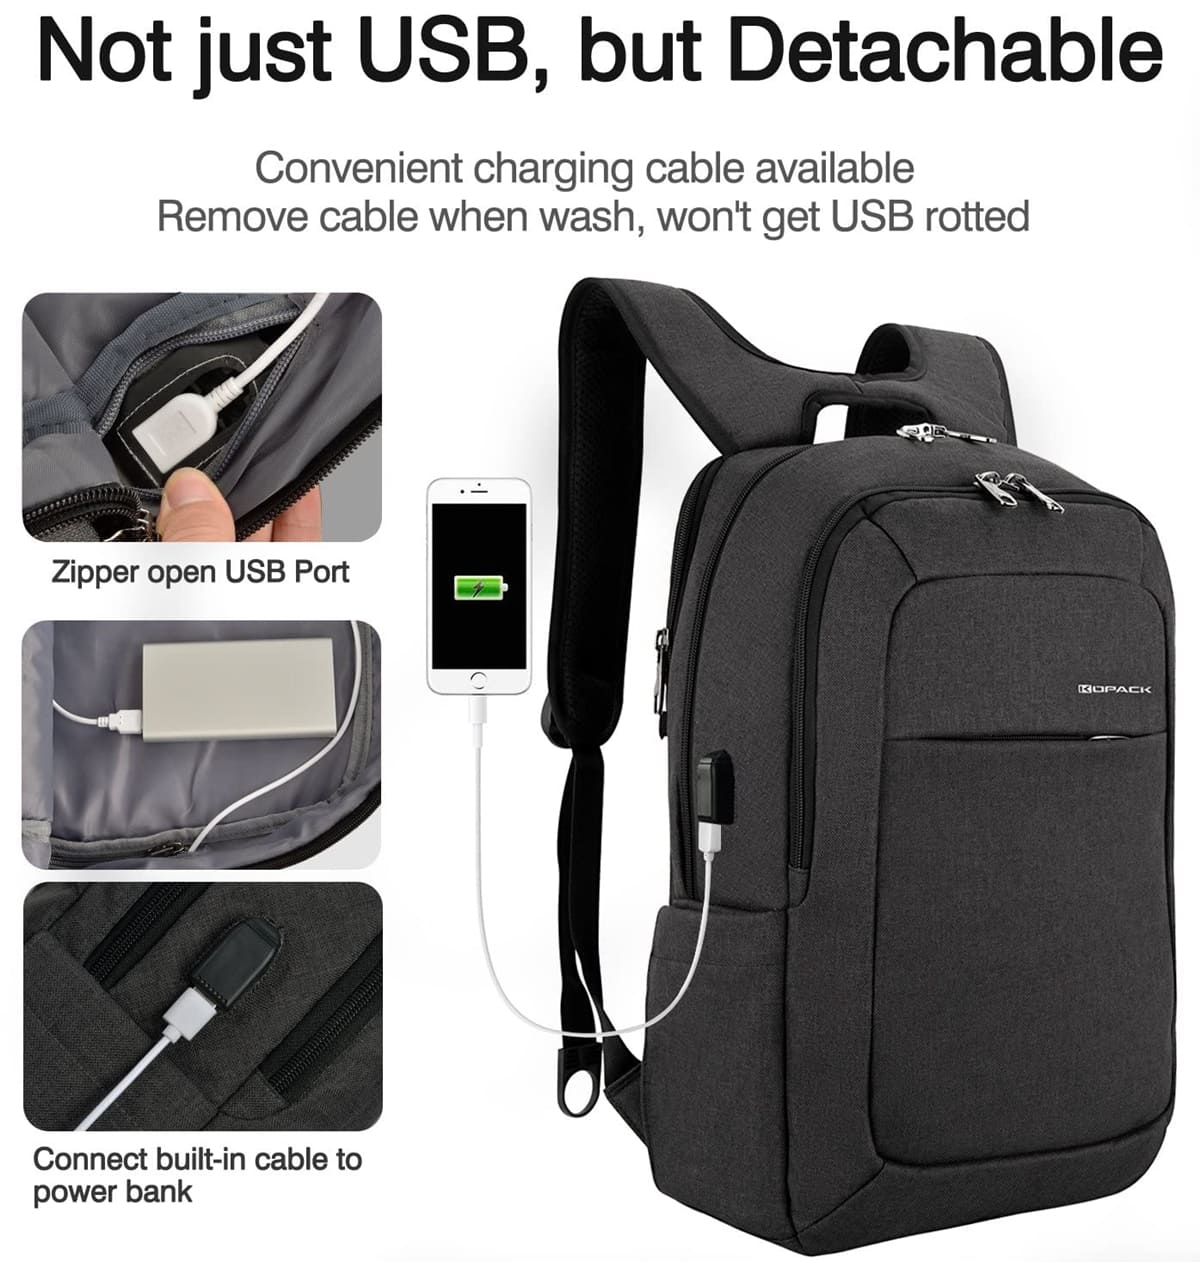 This backpack has an external USB port so that you can easily charge your phone up while on the move